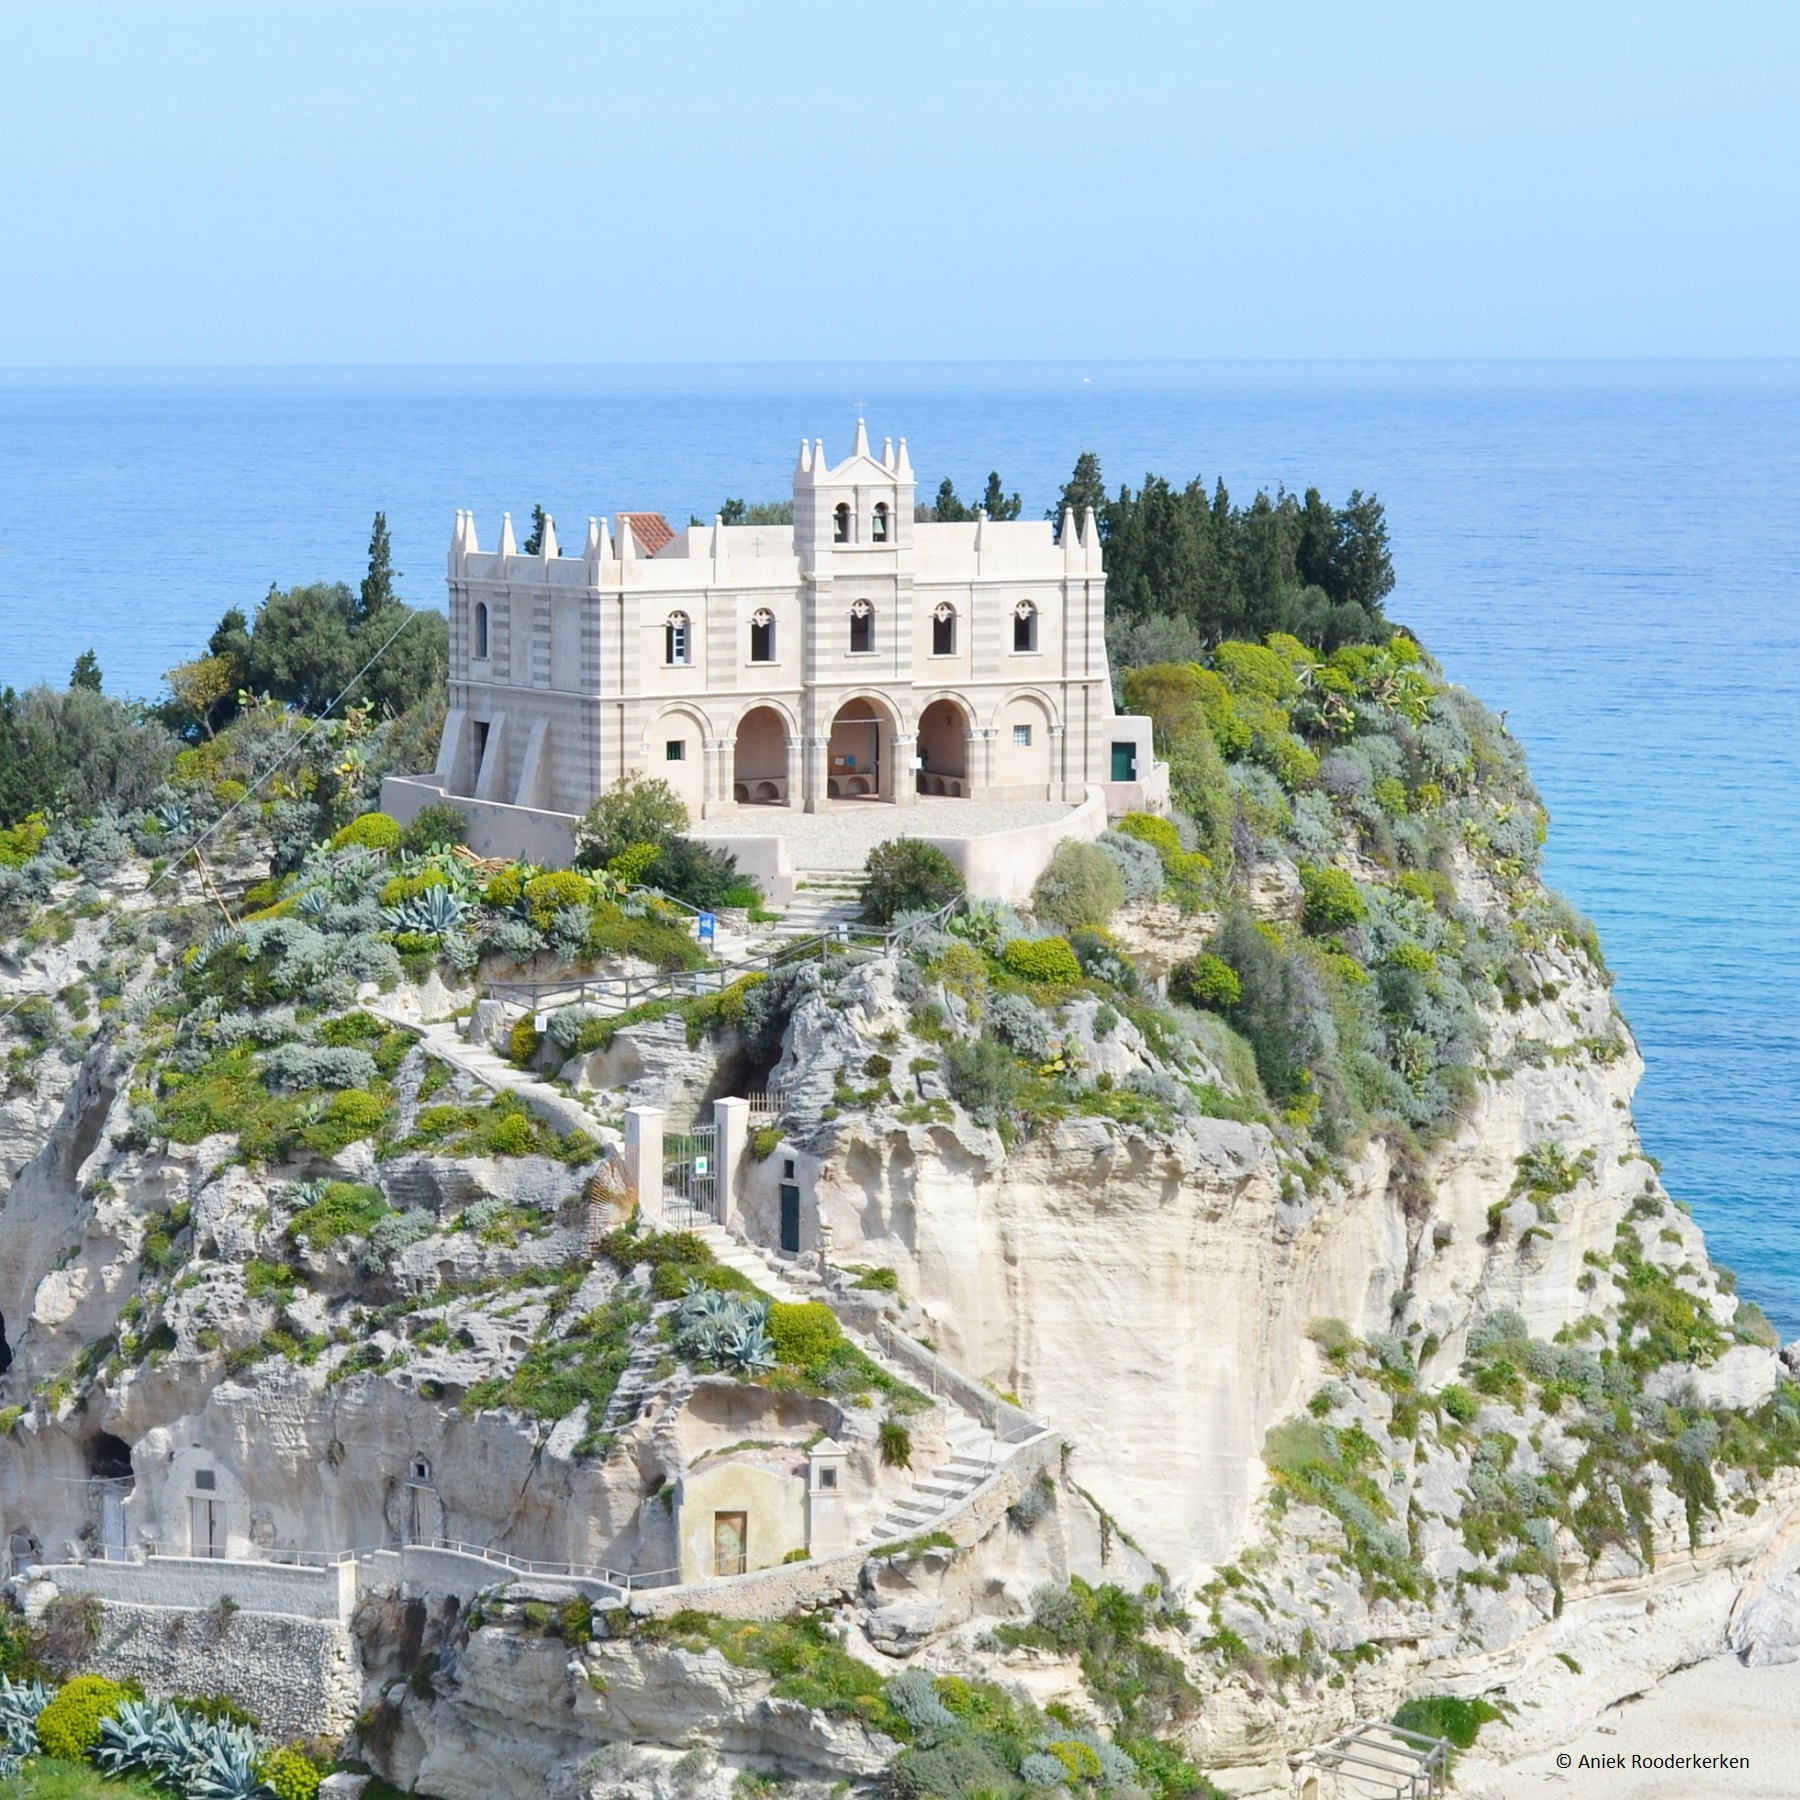 De Santa Maria dell'Isola is de trots van Tropea